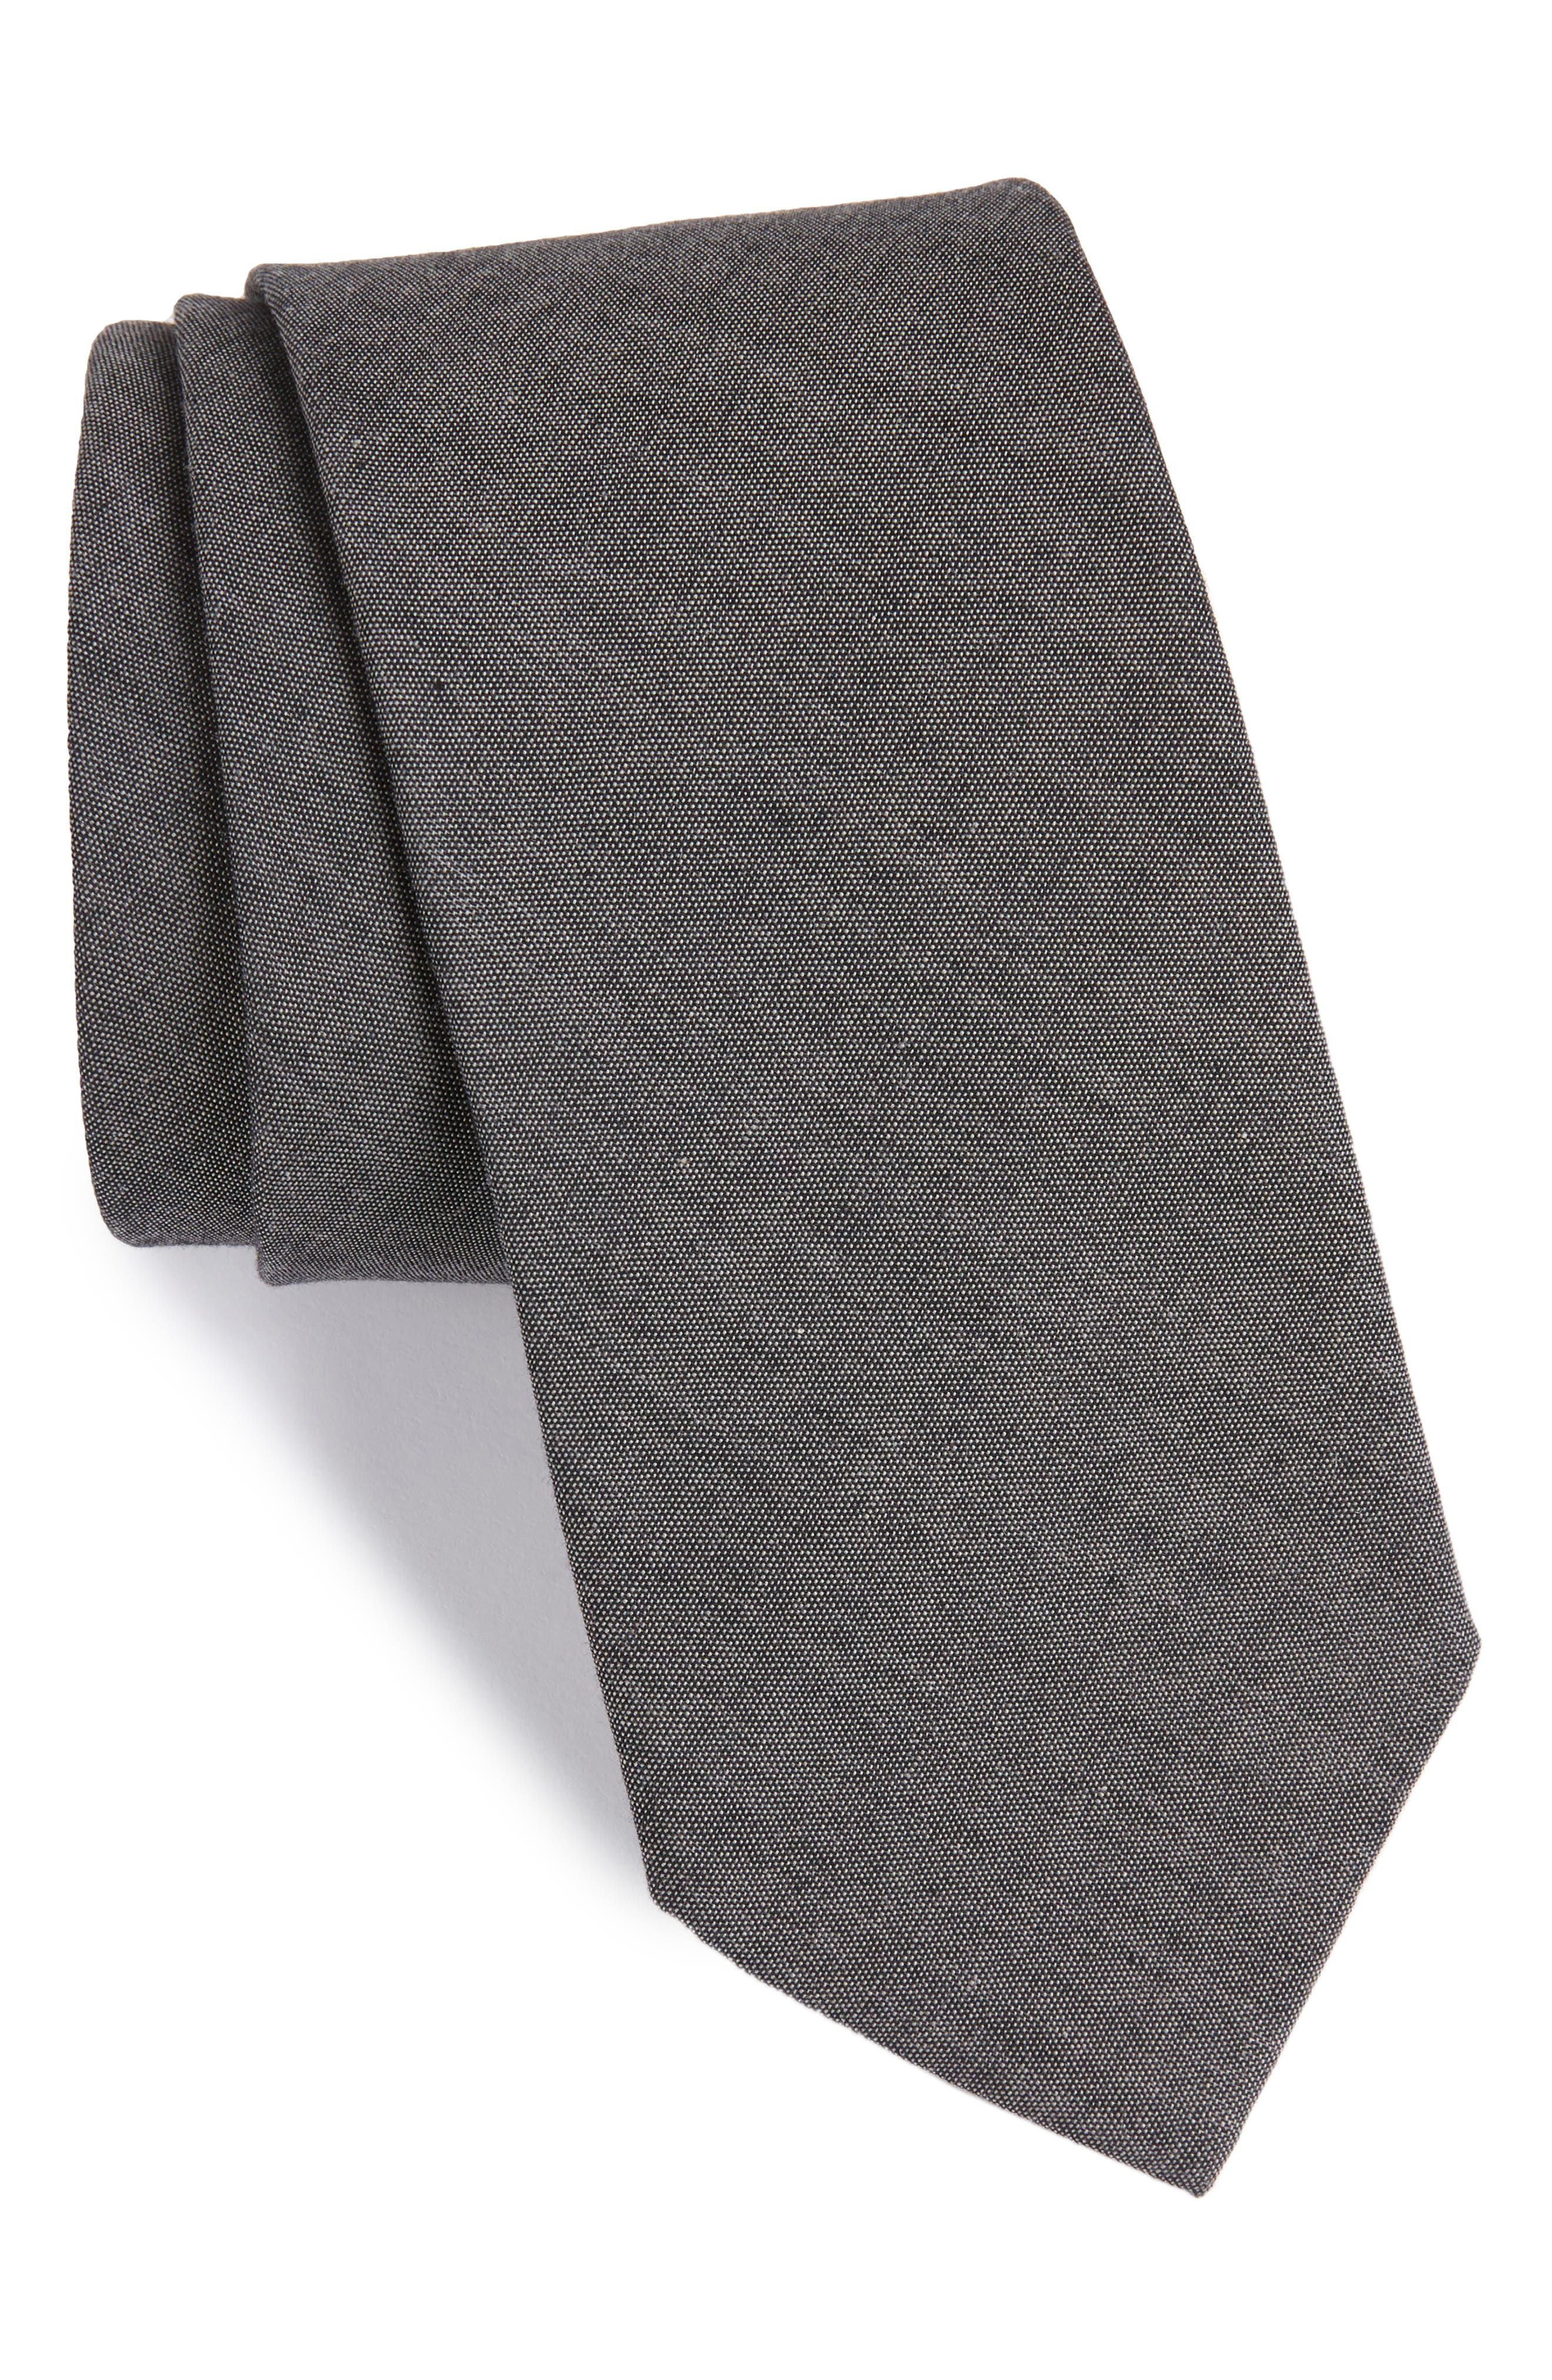 Classic Chambray Cotton Tie,                         Main,                         color, 035